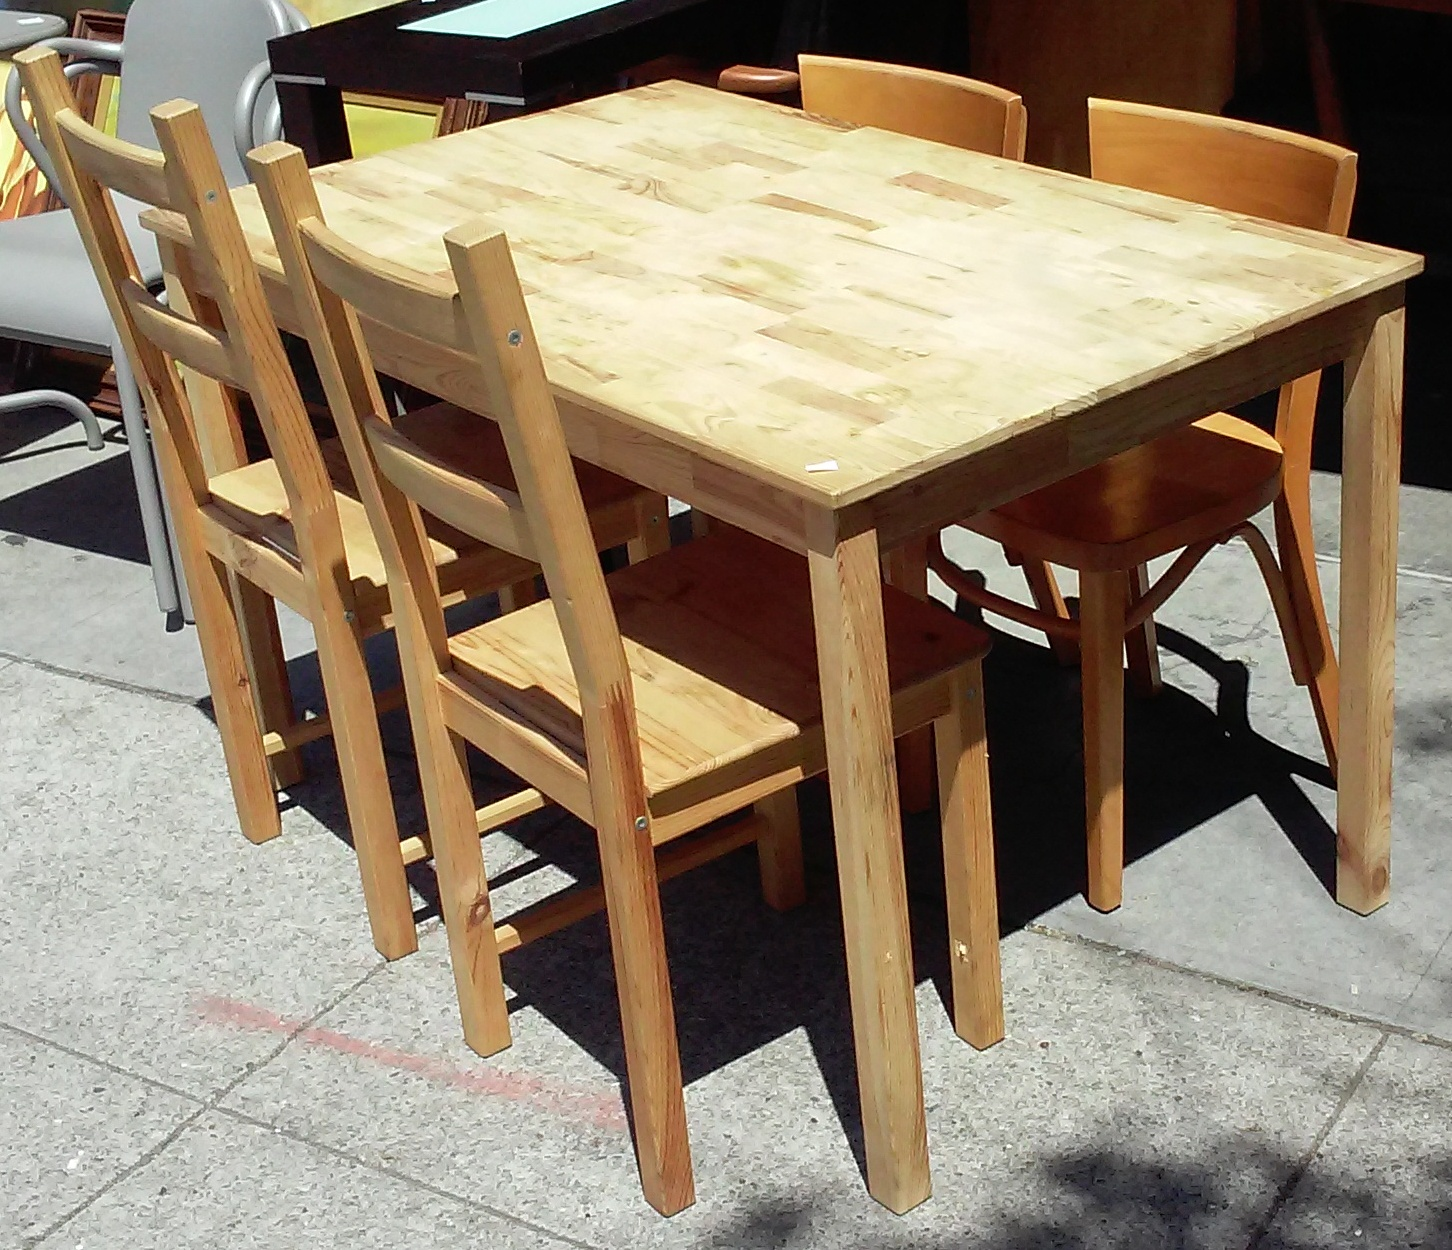 SOLD #2328 Mad Hatter Dinette Table 4 chairs - $60 / Set & UHURU FURNITURE u0026 COLLECTIBLES: SOLD #2328 Mad Hatter Dinette: Table ...